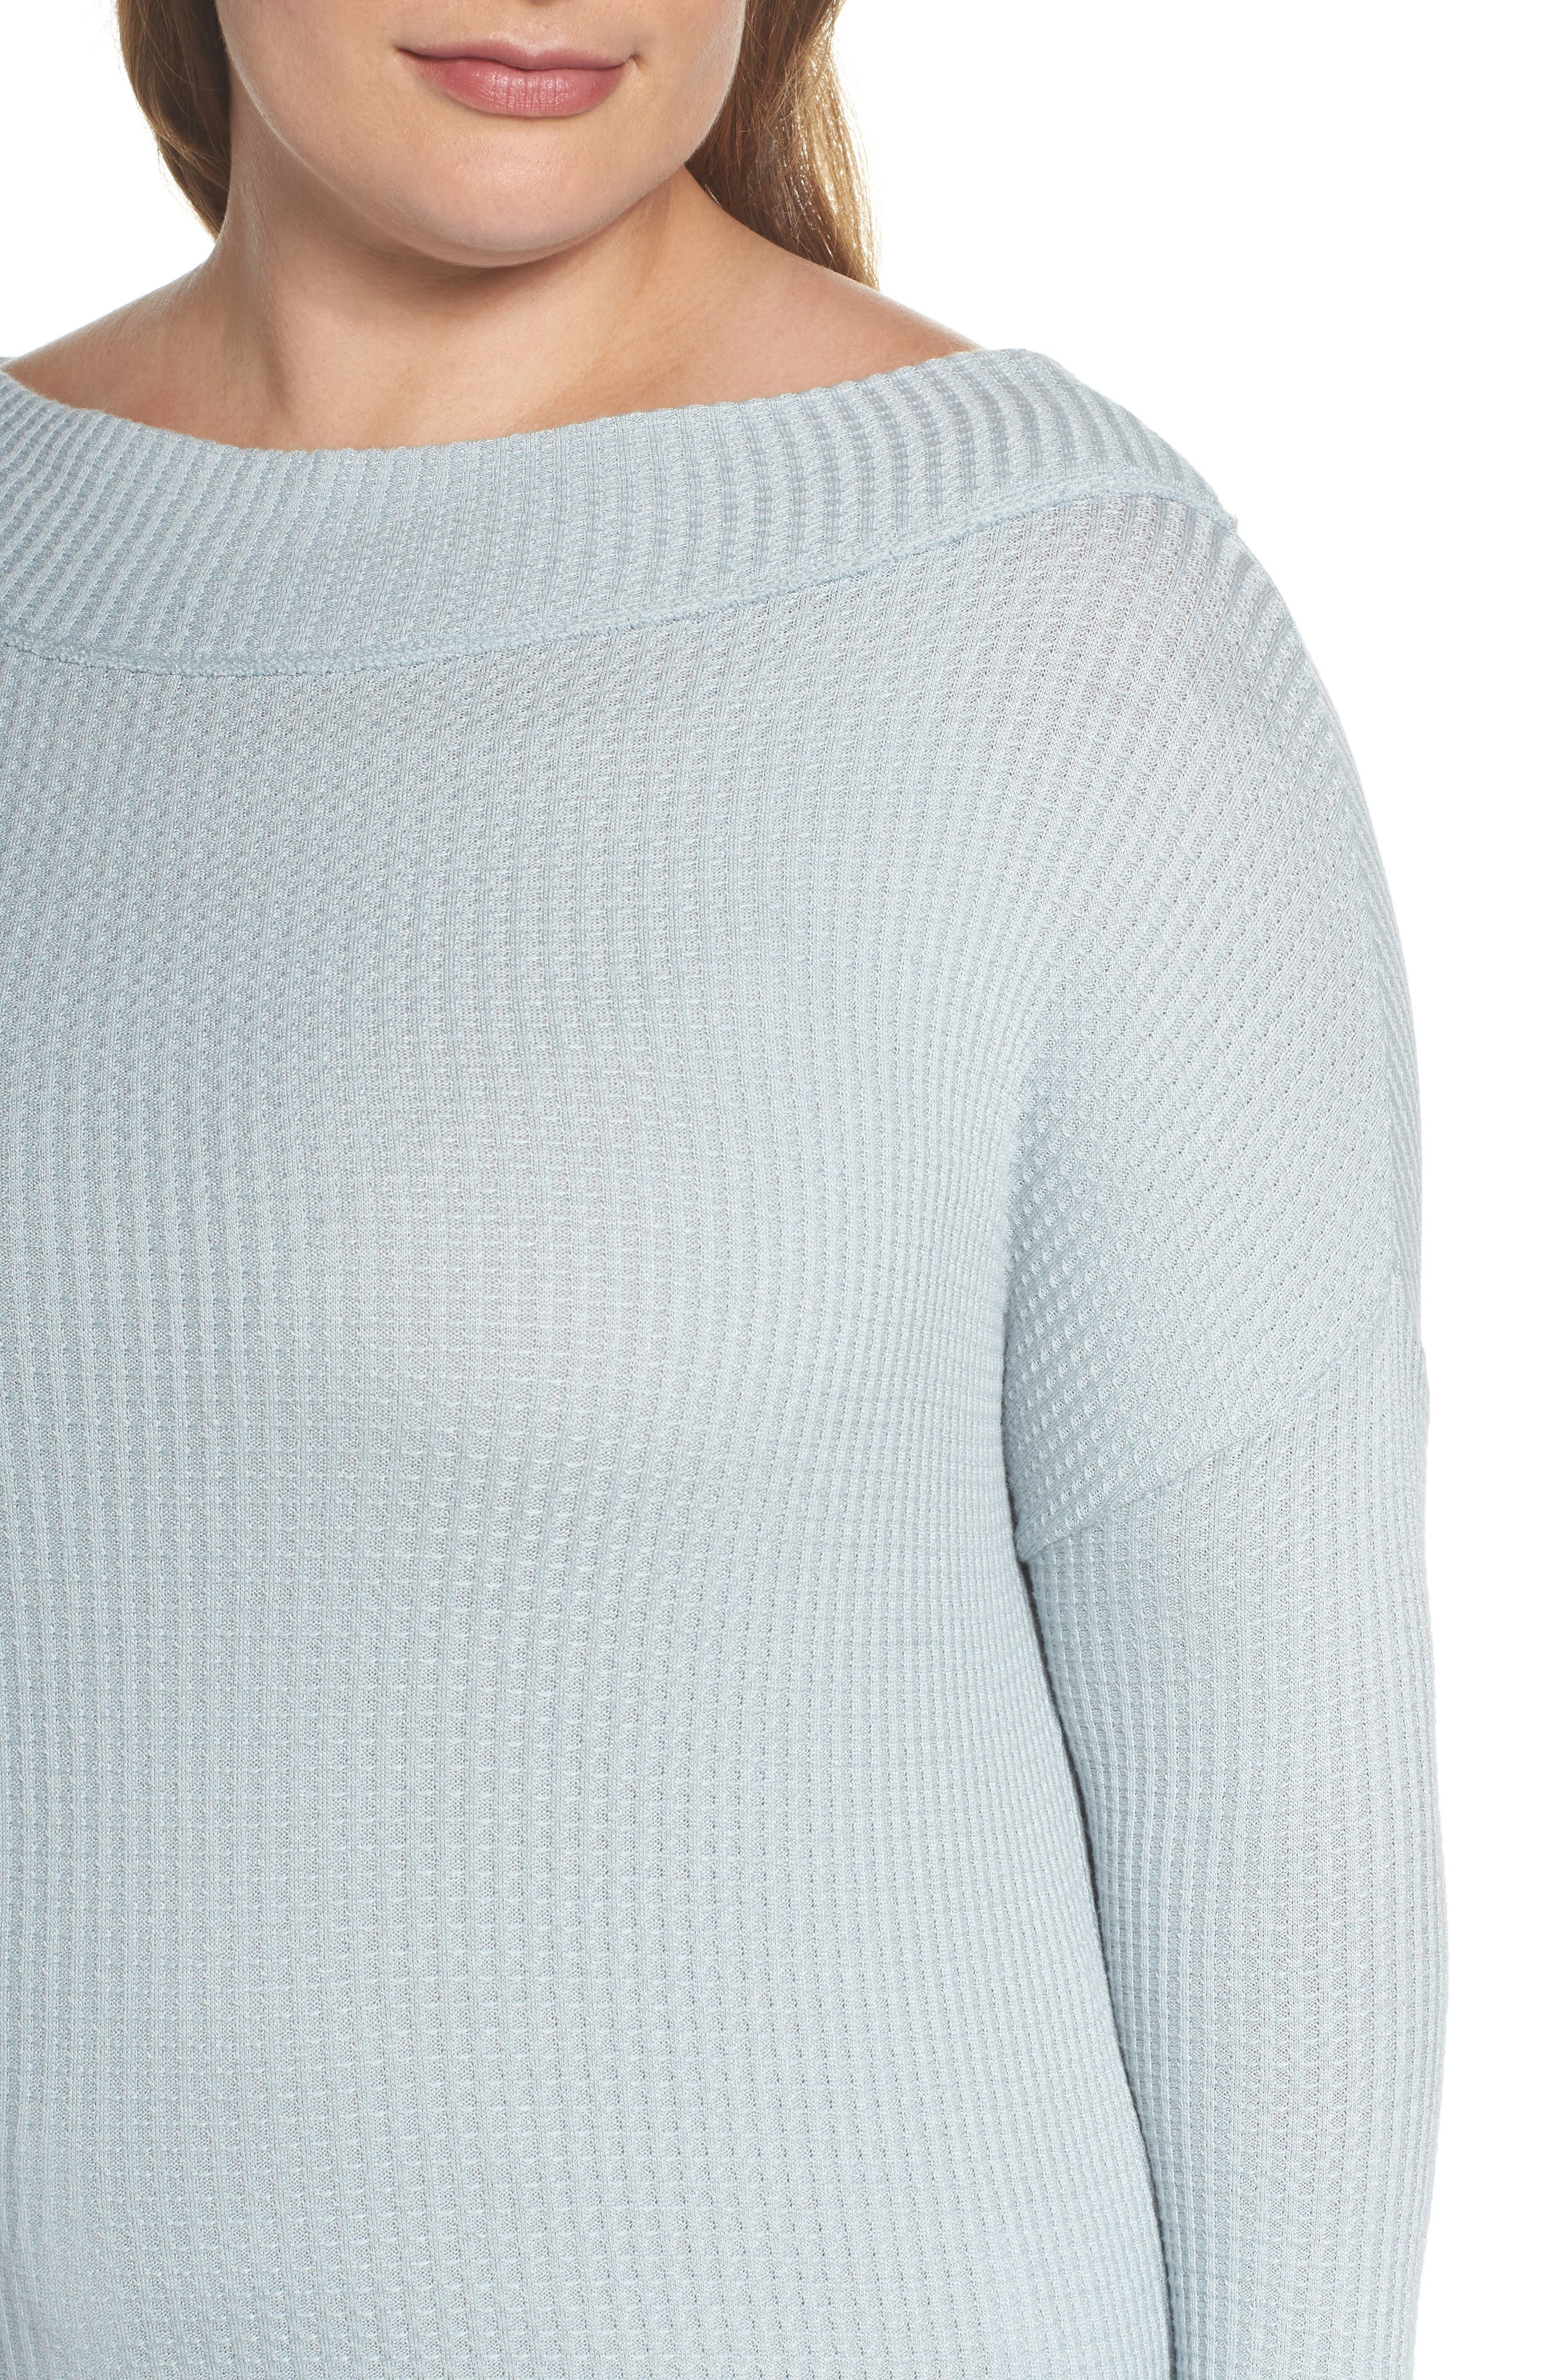 Alternate Image 4  - Lucky Brand Waffle Thermal Top (Plus Size)